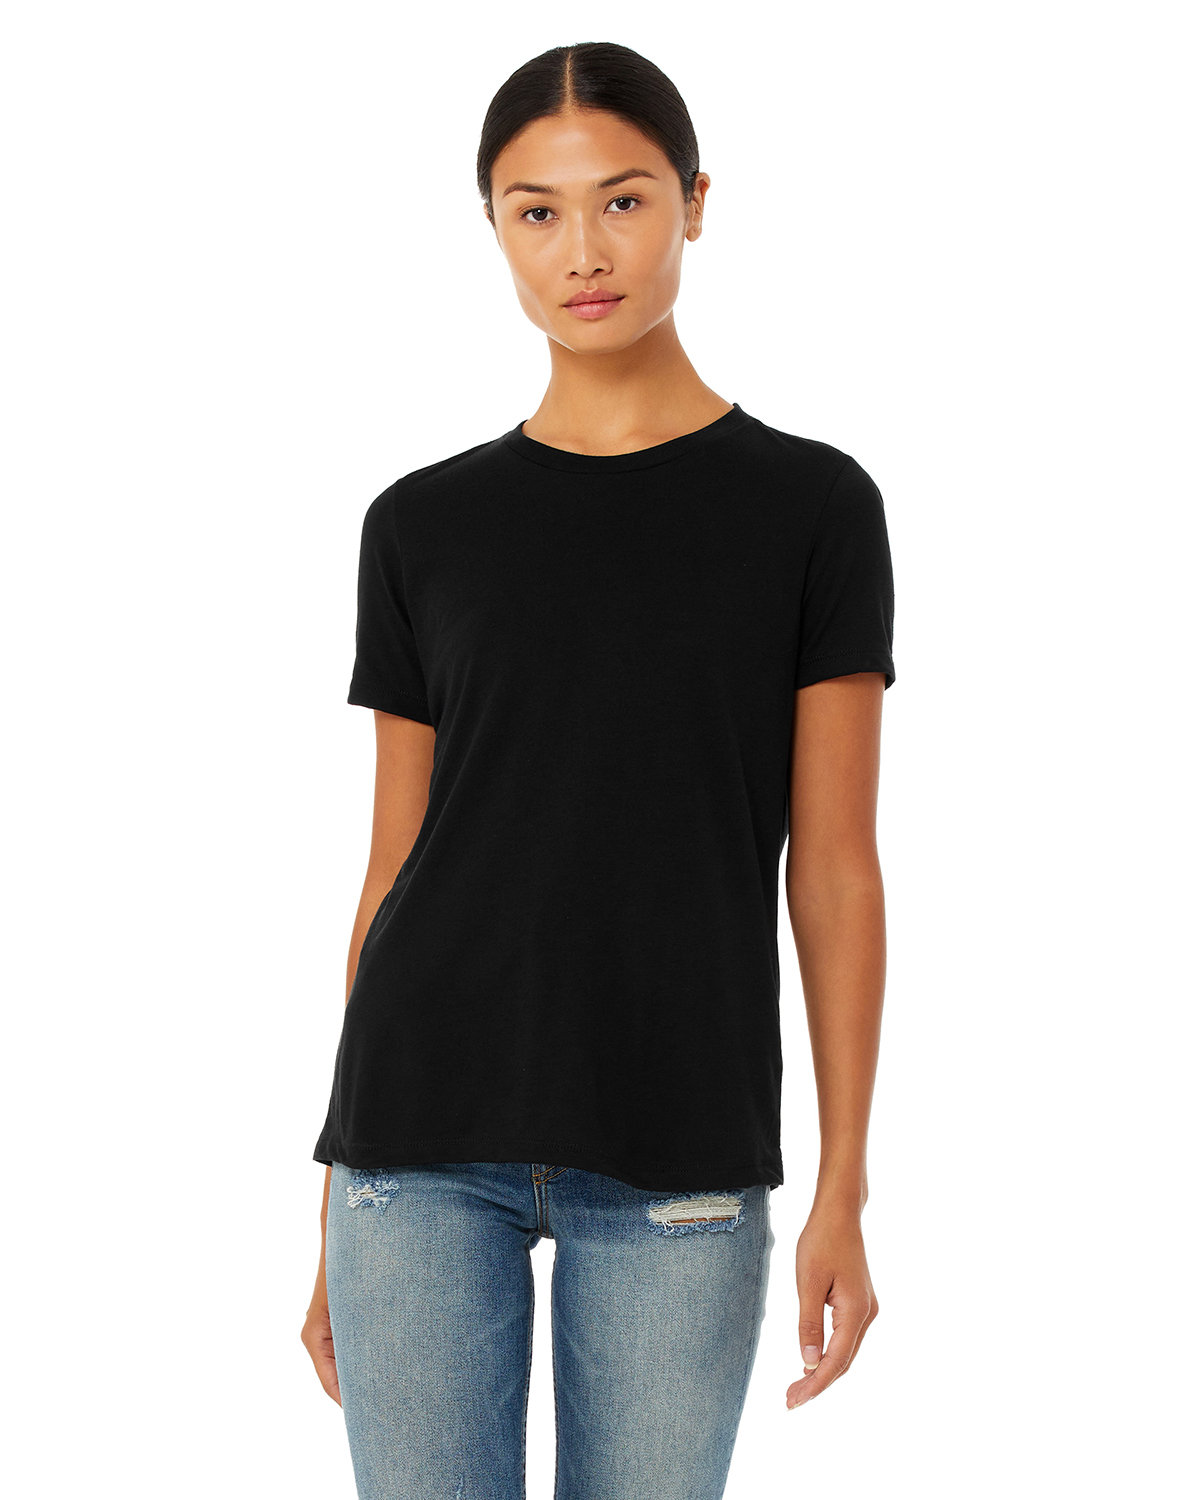 Bella + Canvas Ladies' Relaxed Triblend T-Shirt SOLID BLK TRBLND